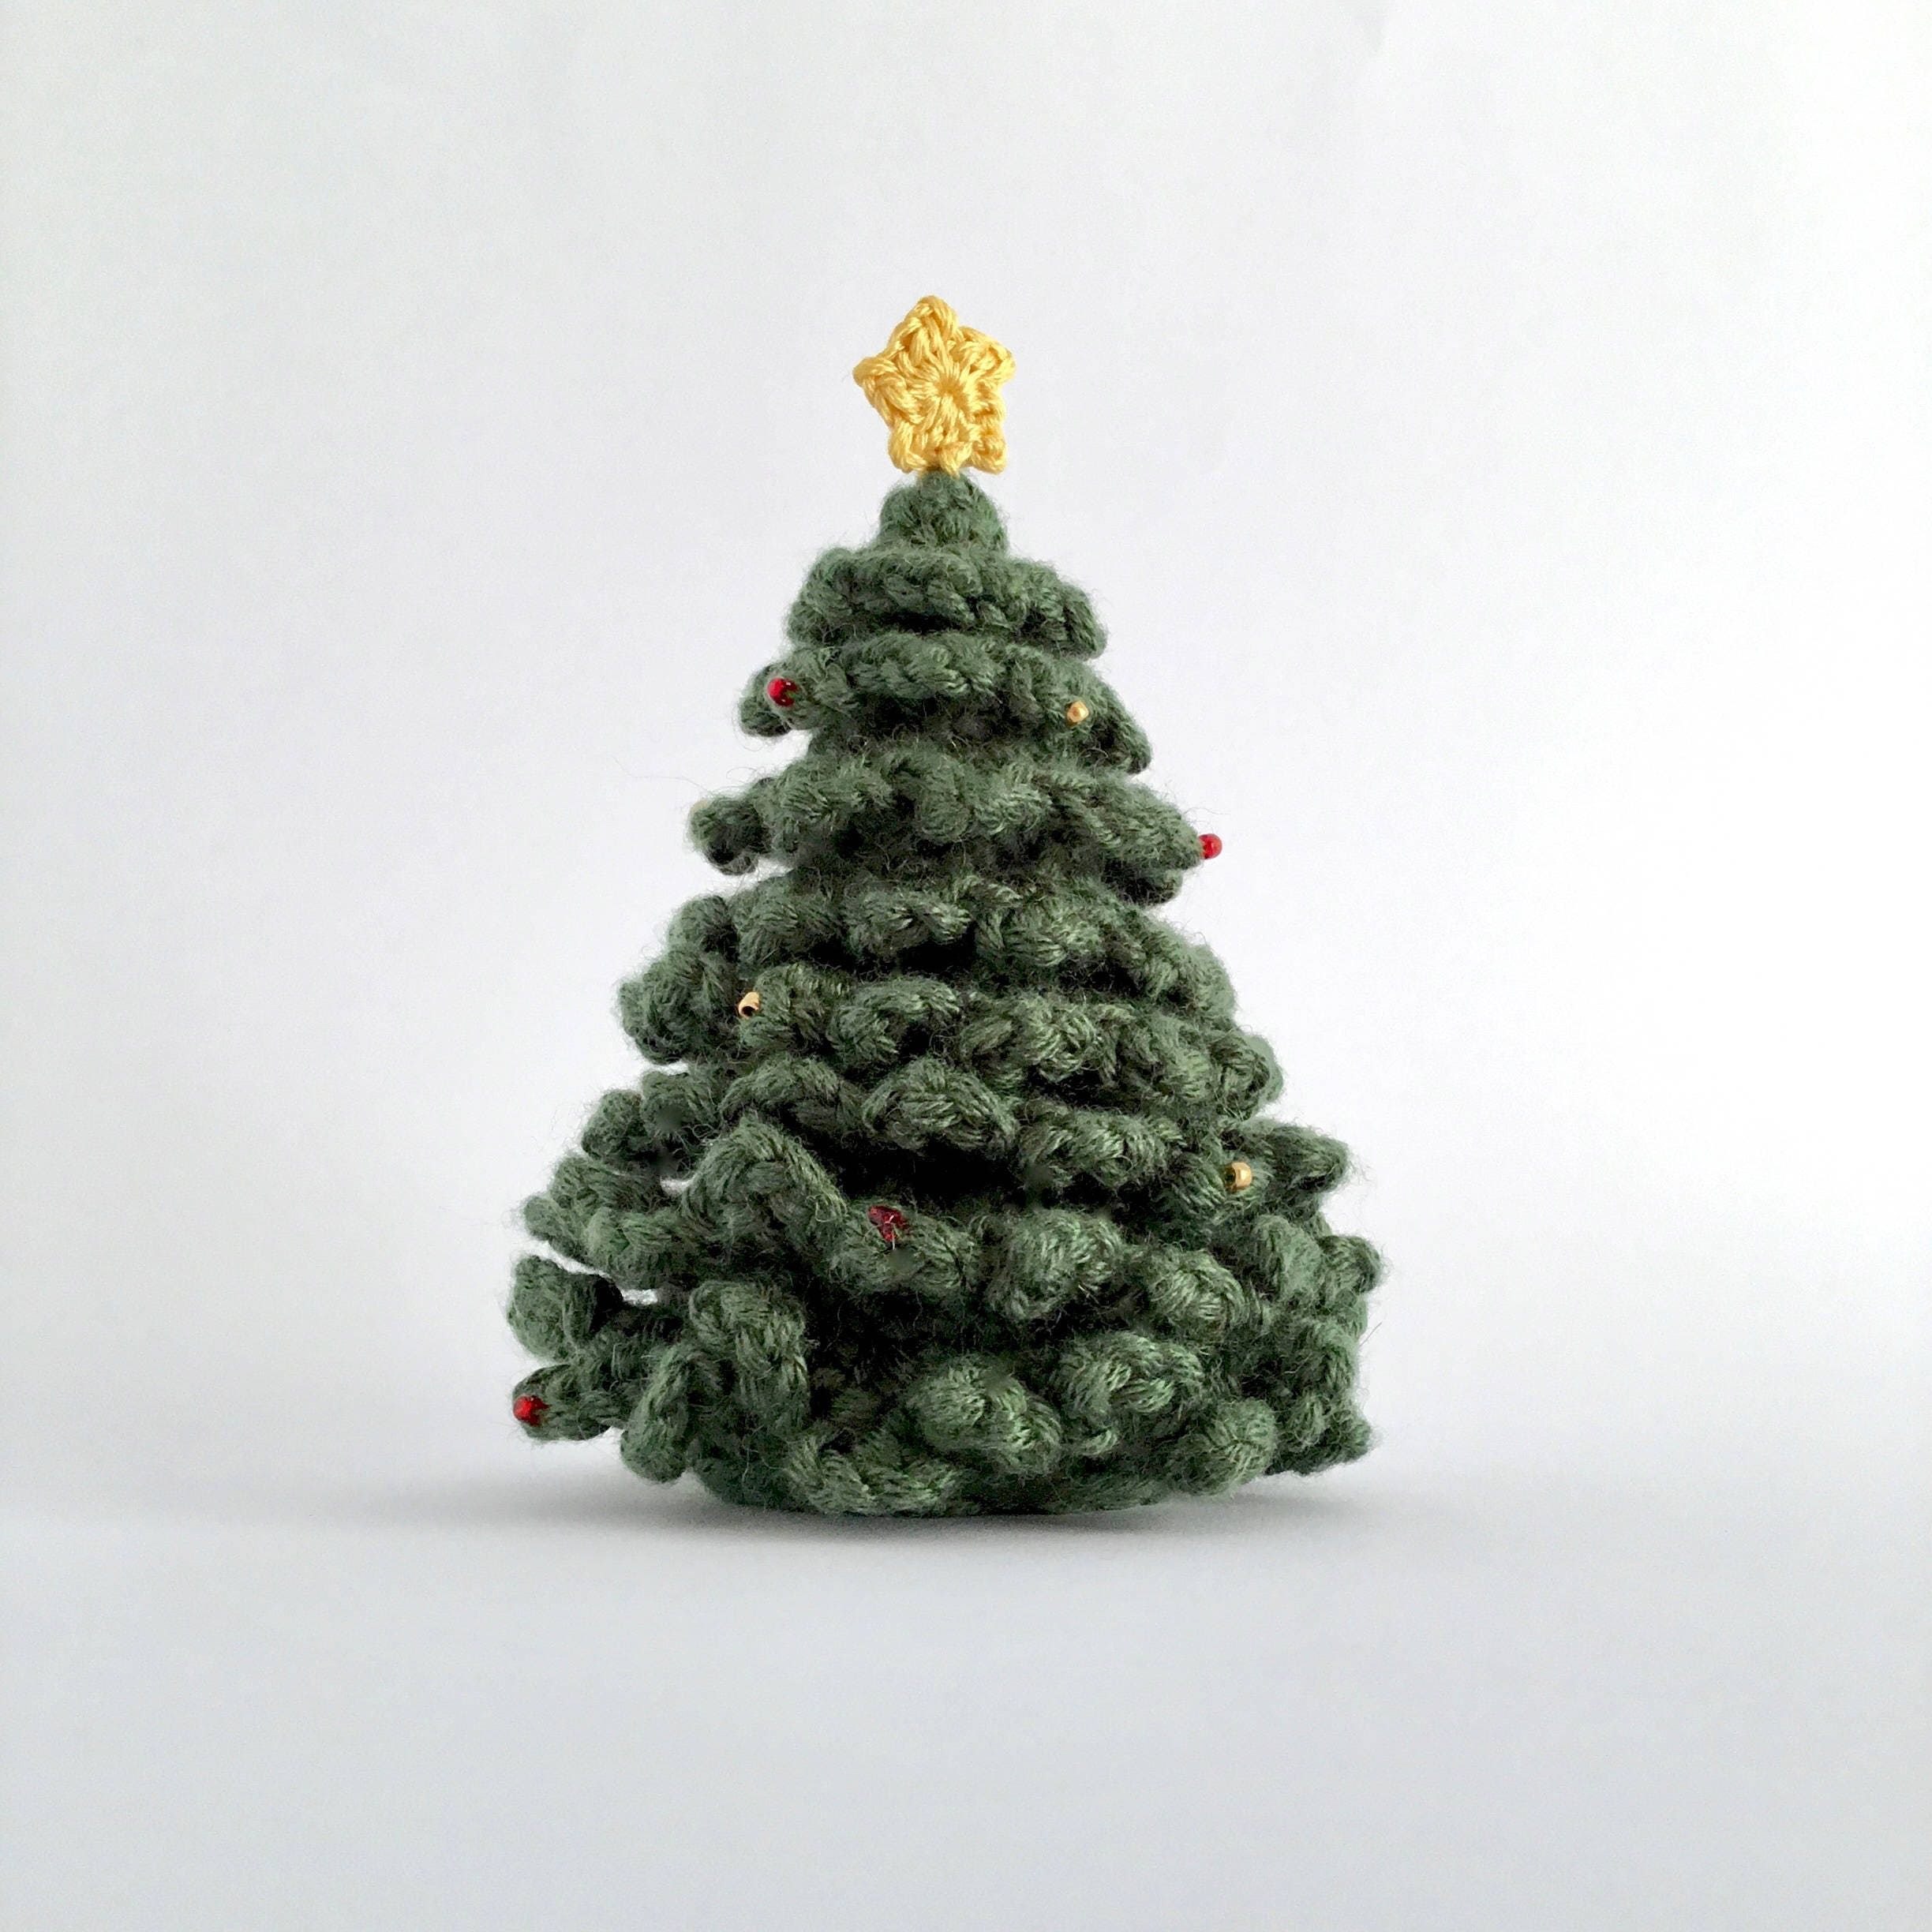 Small Christmas Trees Uk: Miniature Christmas Tree Desk Table Decoration Ornament